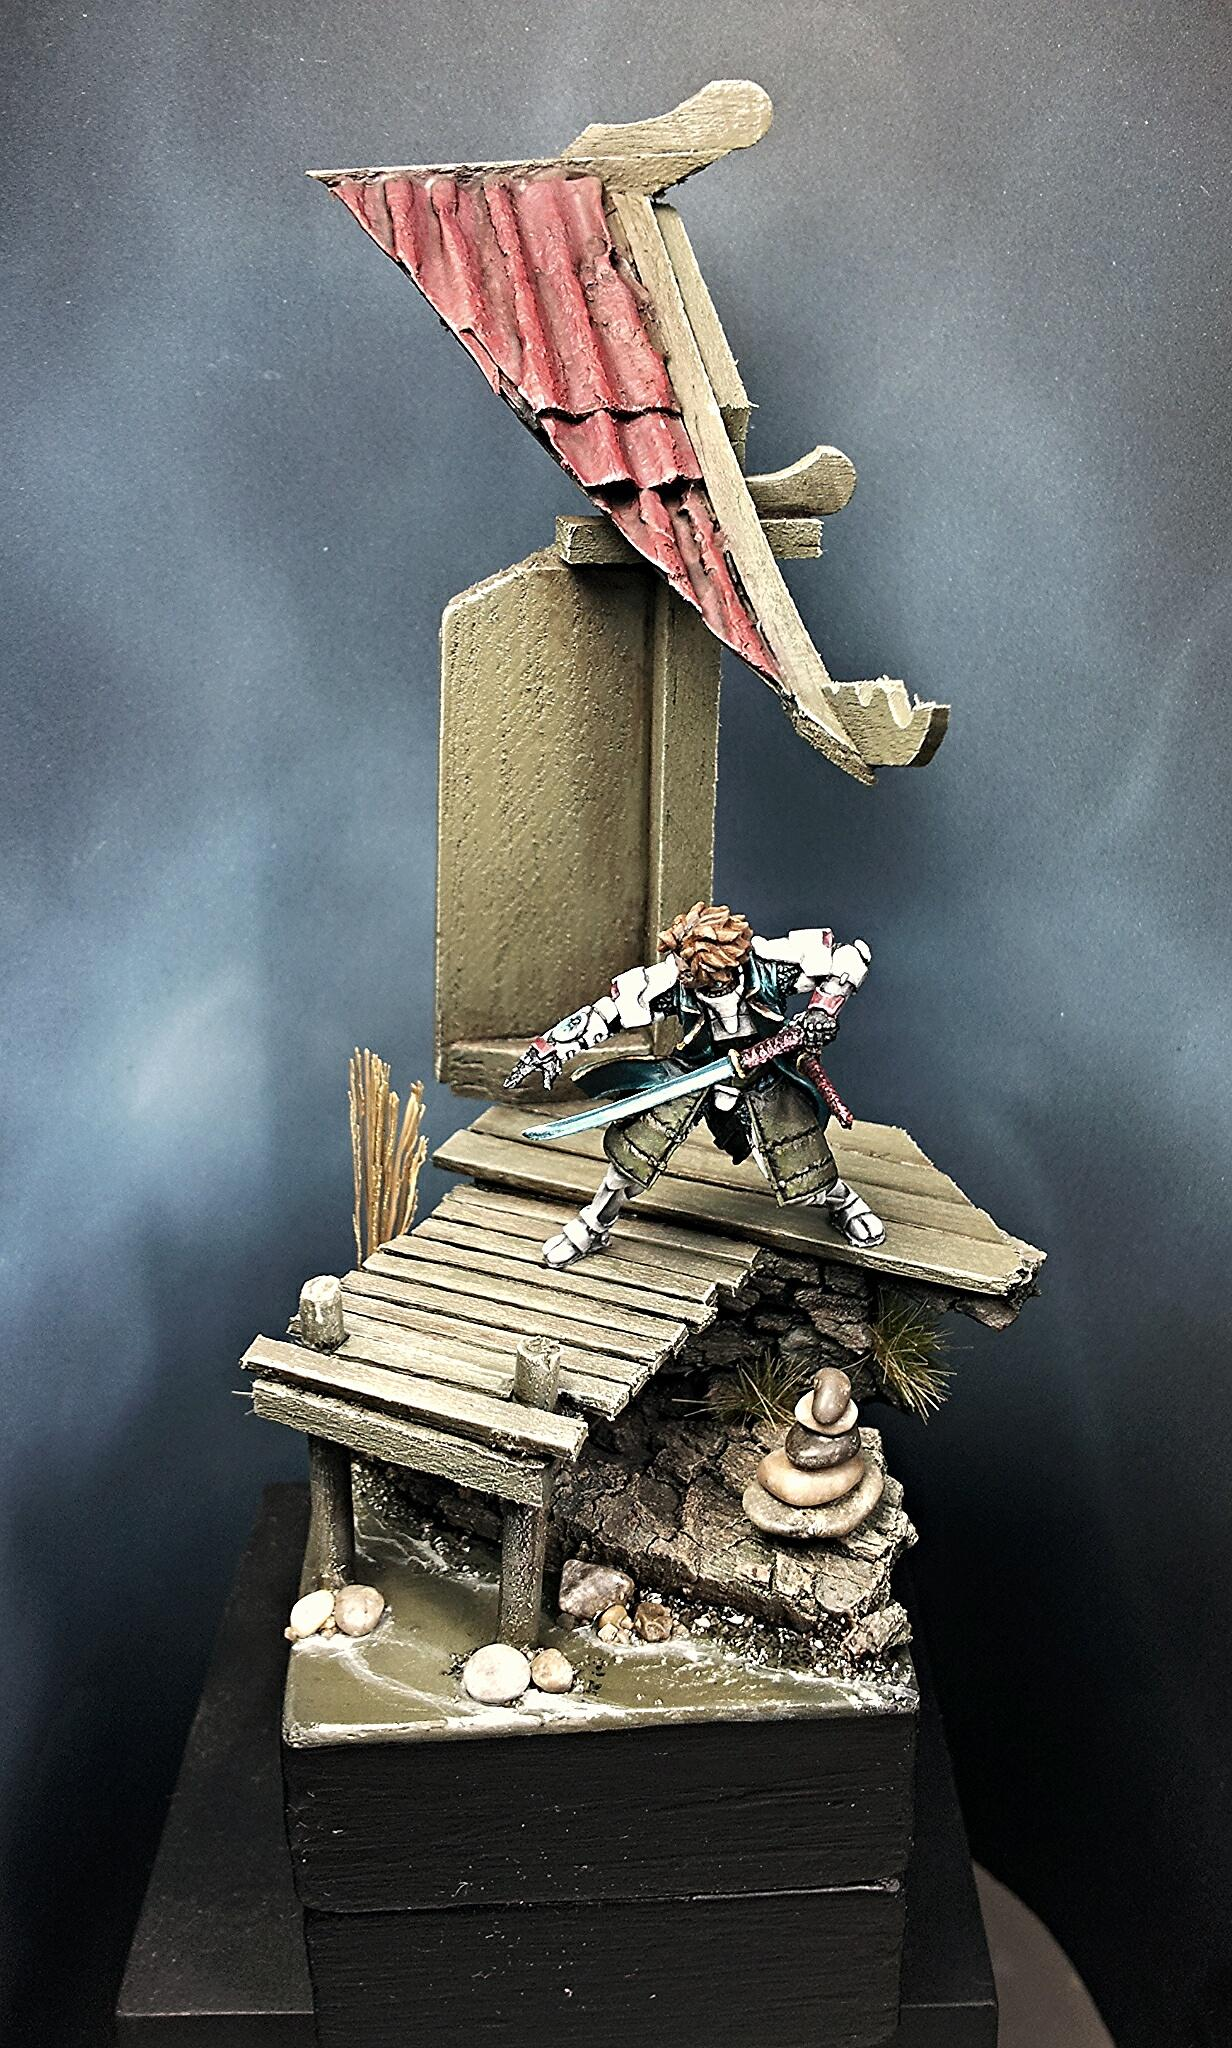 Dakka Painting Challenge, Infinity, Two Tickets To Paradiso